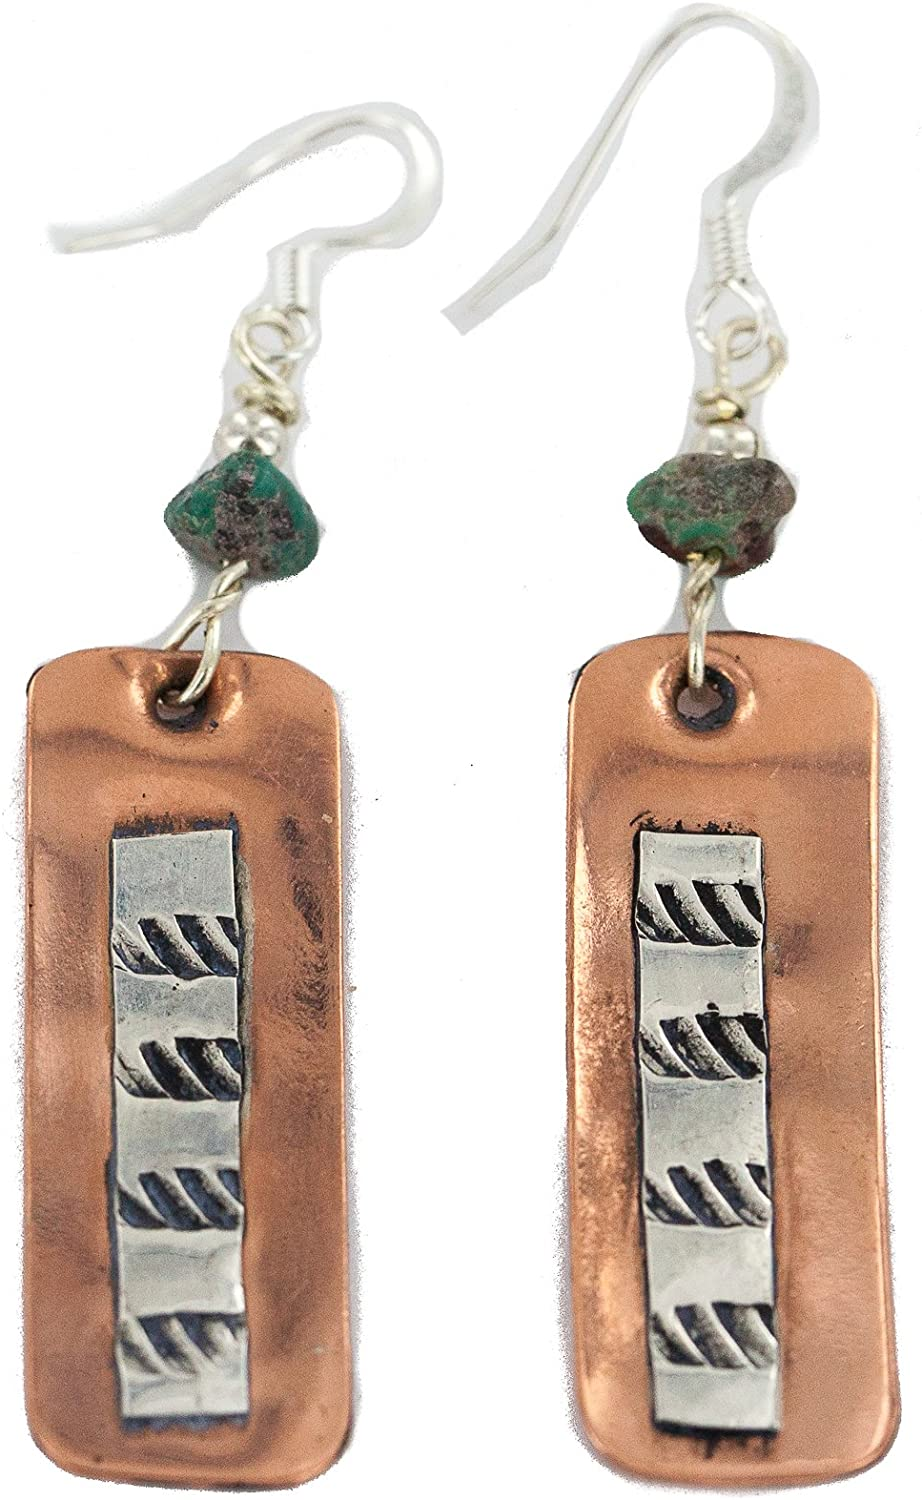 $300Tag Certified Silver Hooks Navajo Turquoise Native Copper Dangle Earrings 18210-6 Made By Loma Siiva